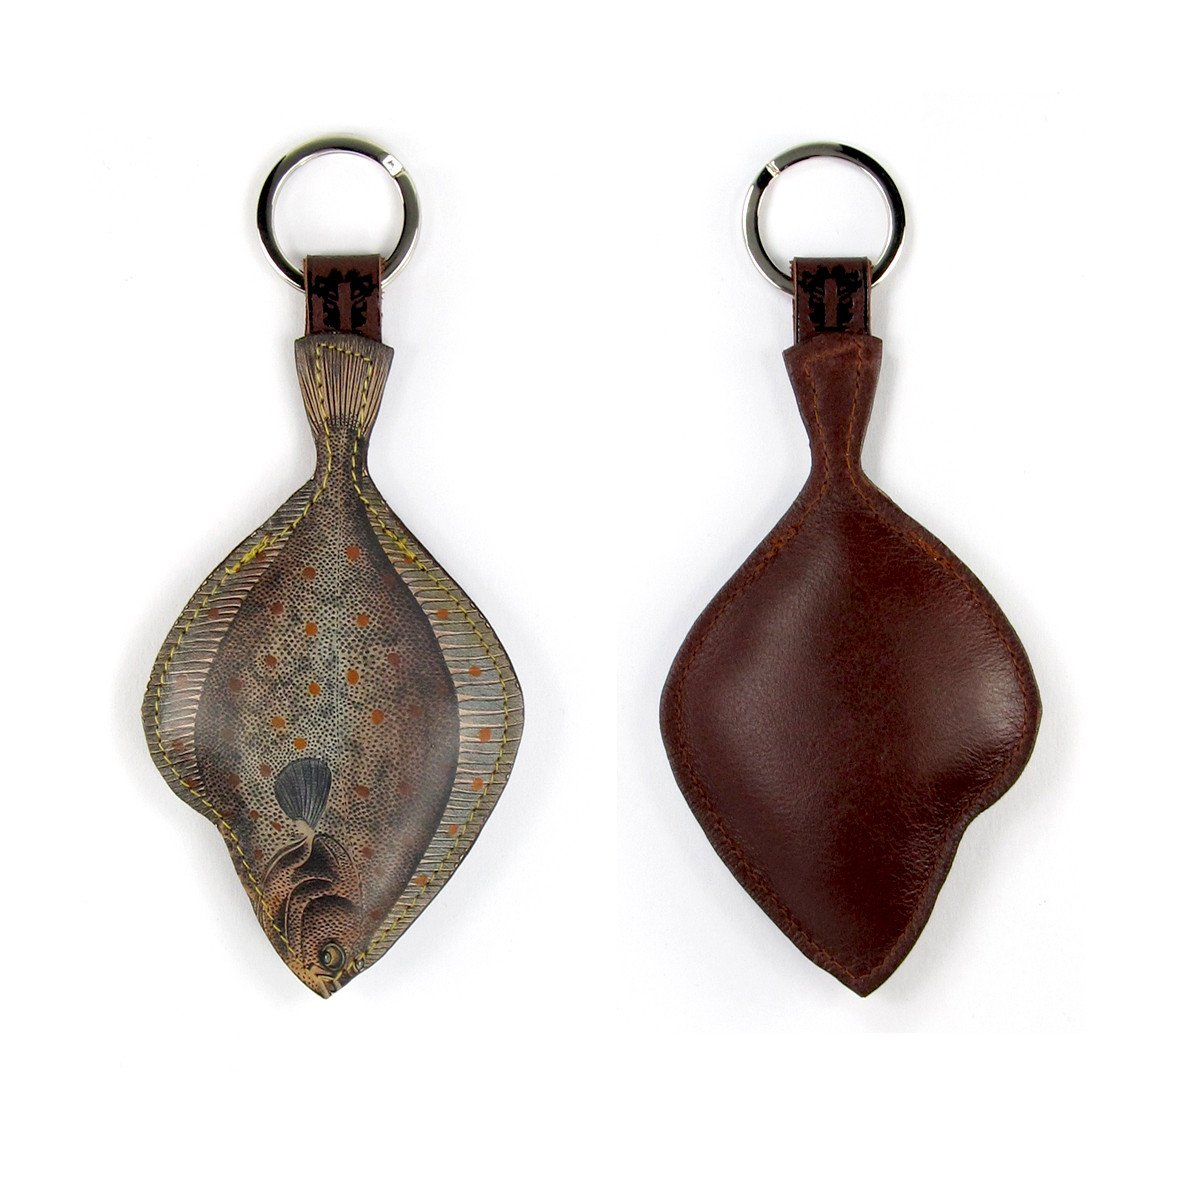 Leather Key Ring - Plaice Fish Key Ring / Bag Charm Tovi Sorga